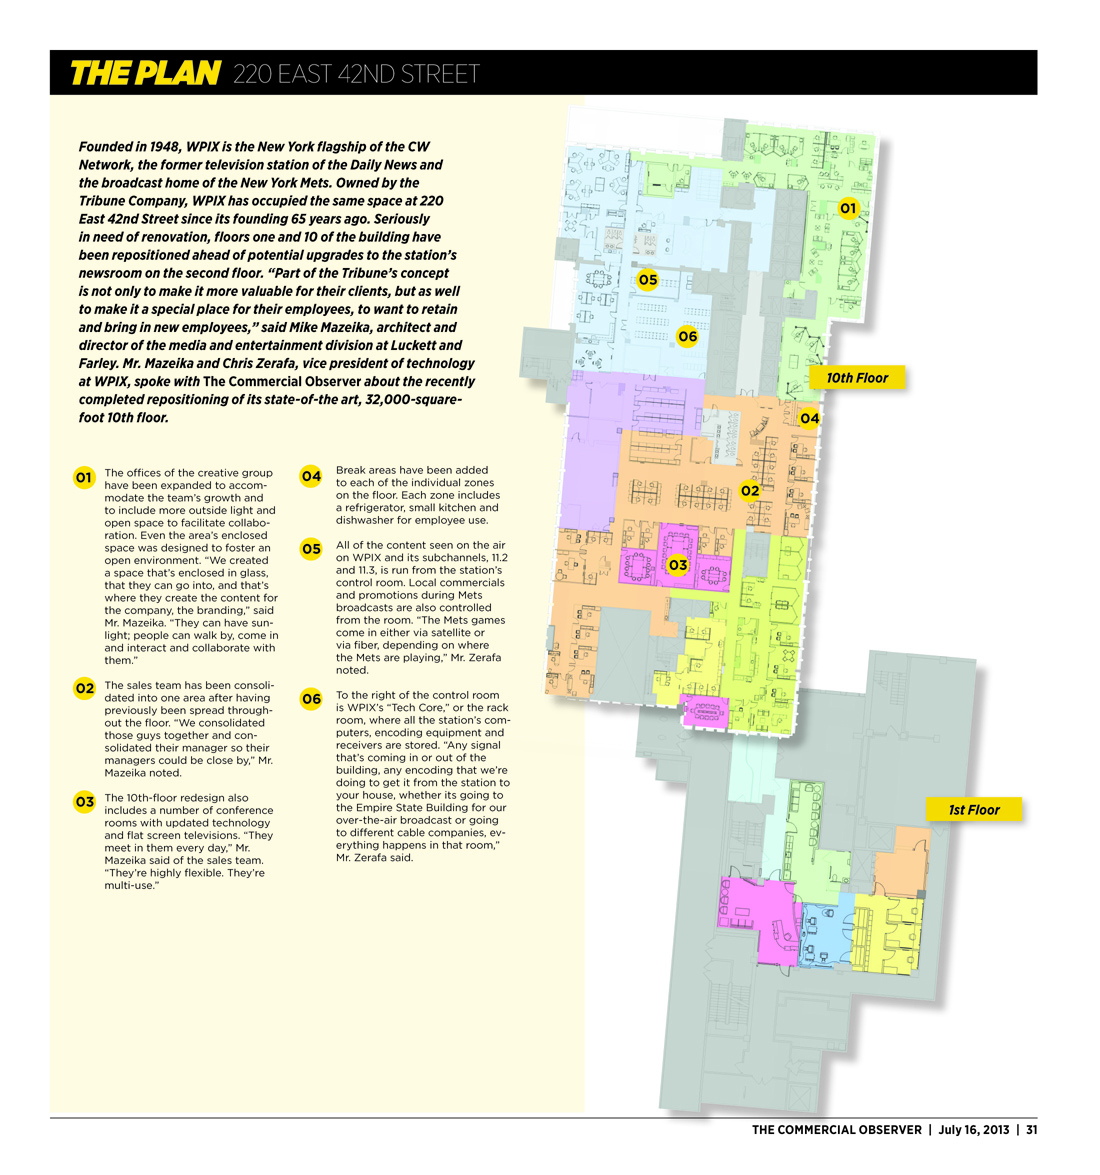 plan The Modernization of the WPIX Building